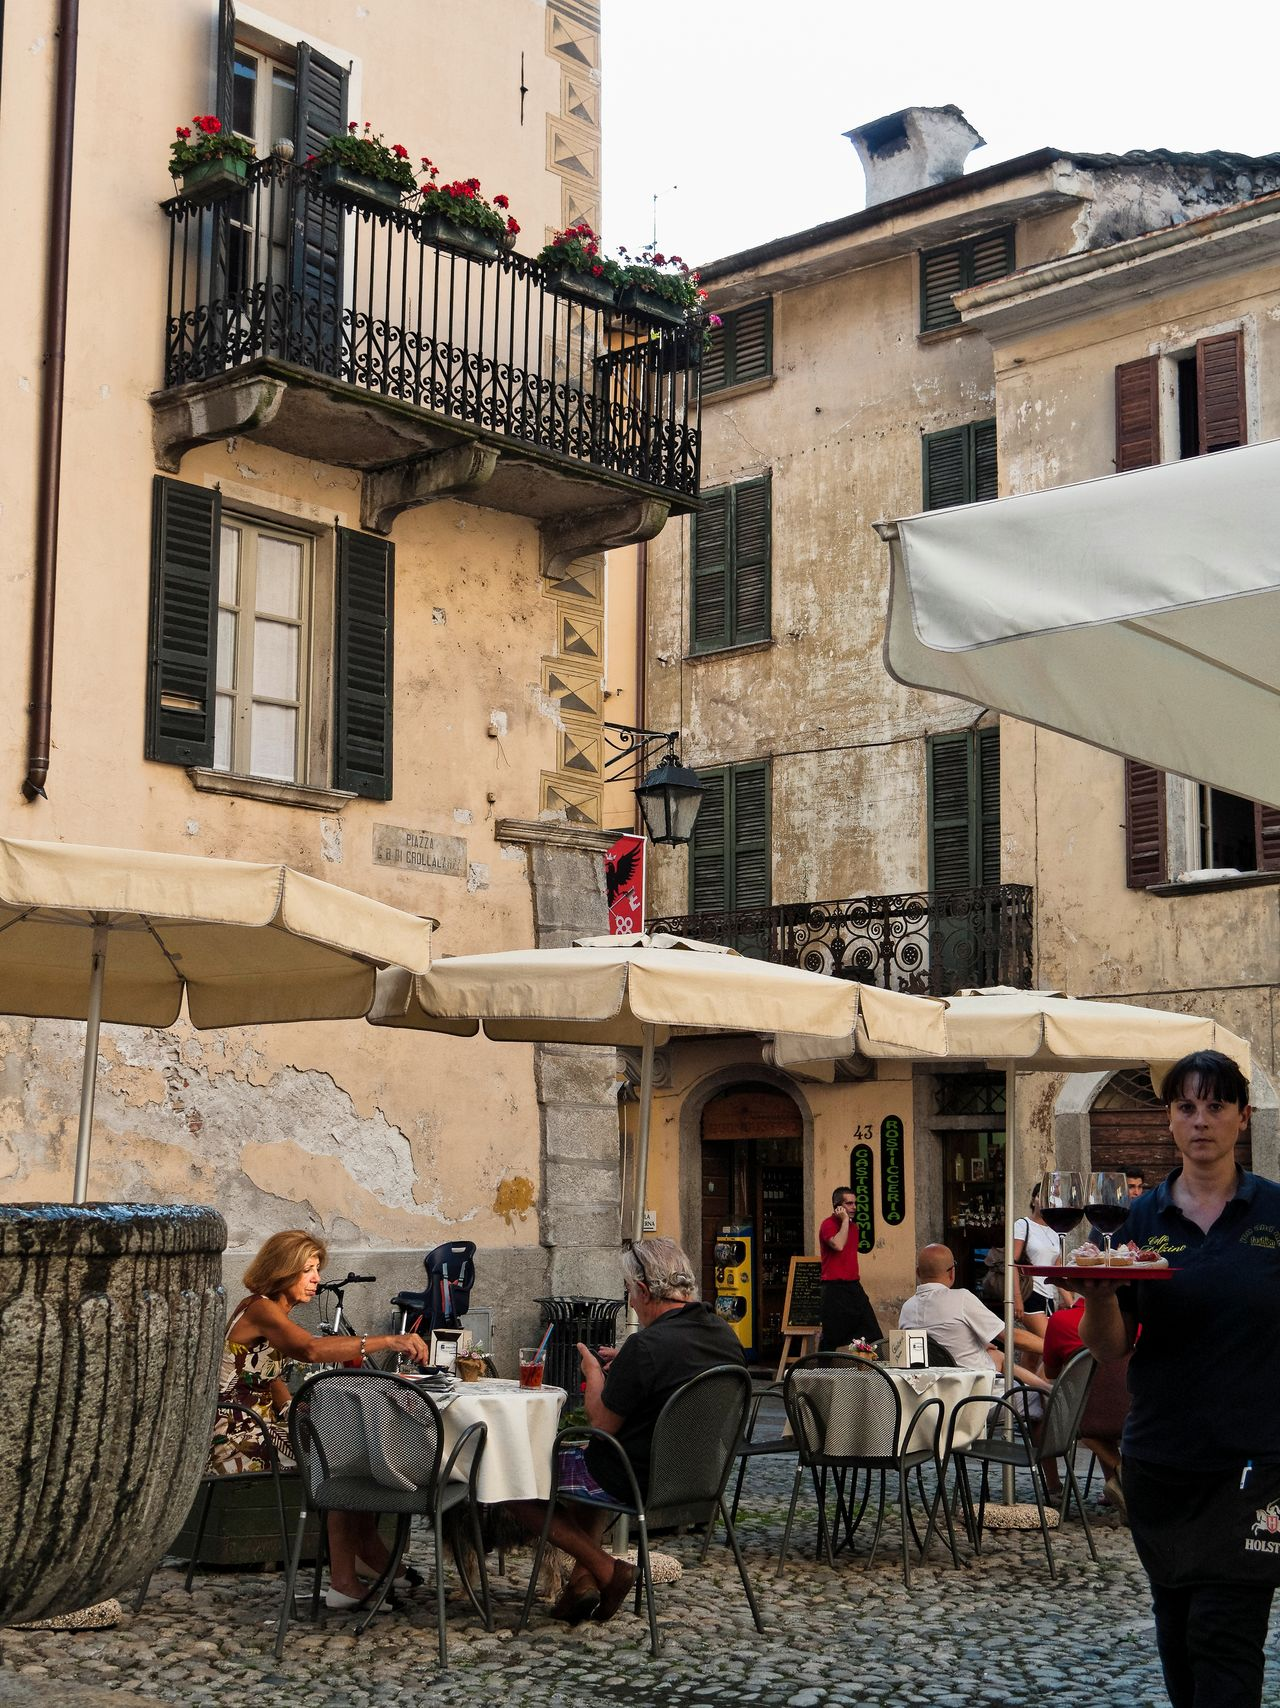 Adult Adults Only Architecture Balcony Building Exterior Built Structure City Day Food And Drink Industry Men Old Town One Person Outdoors People Sidewalk Cafe Sky Table Window